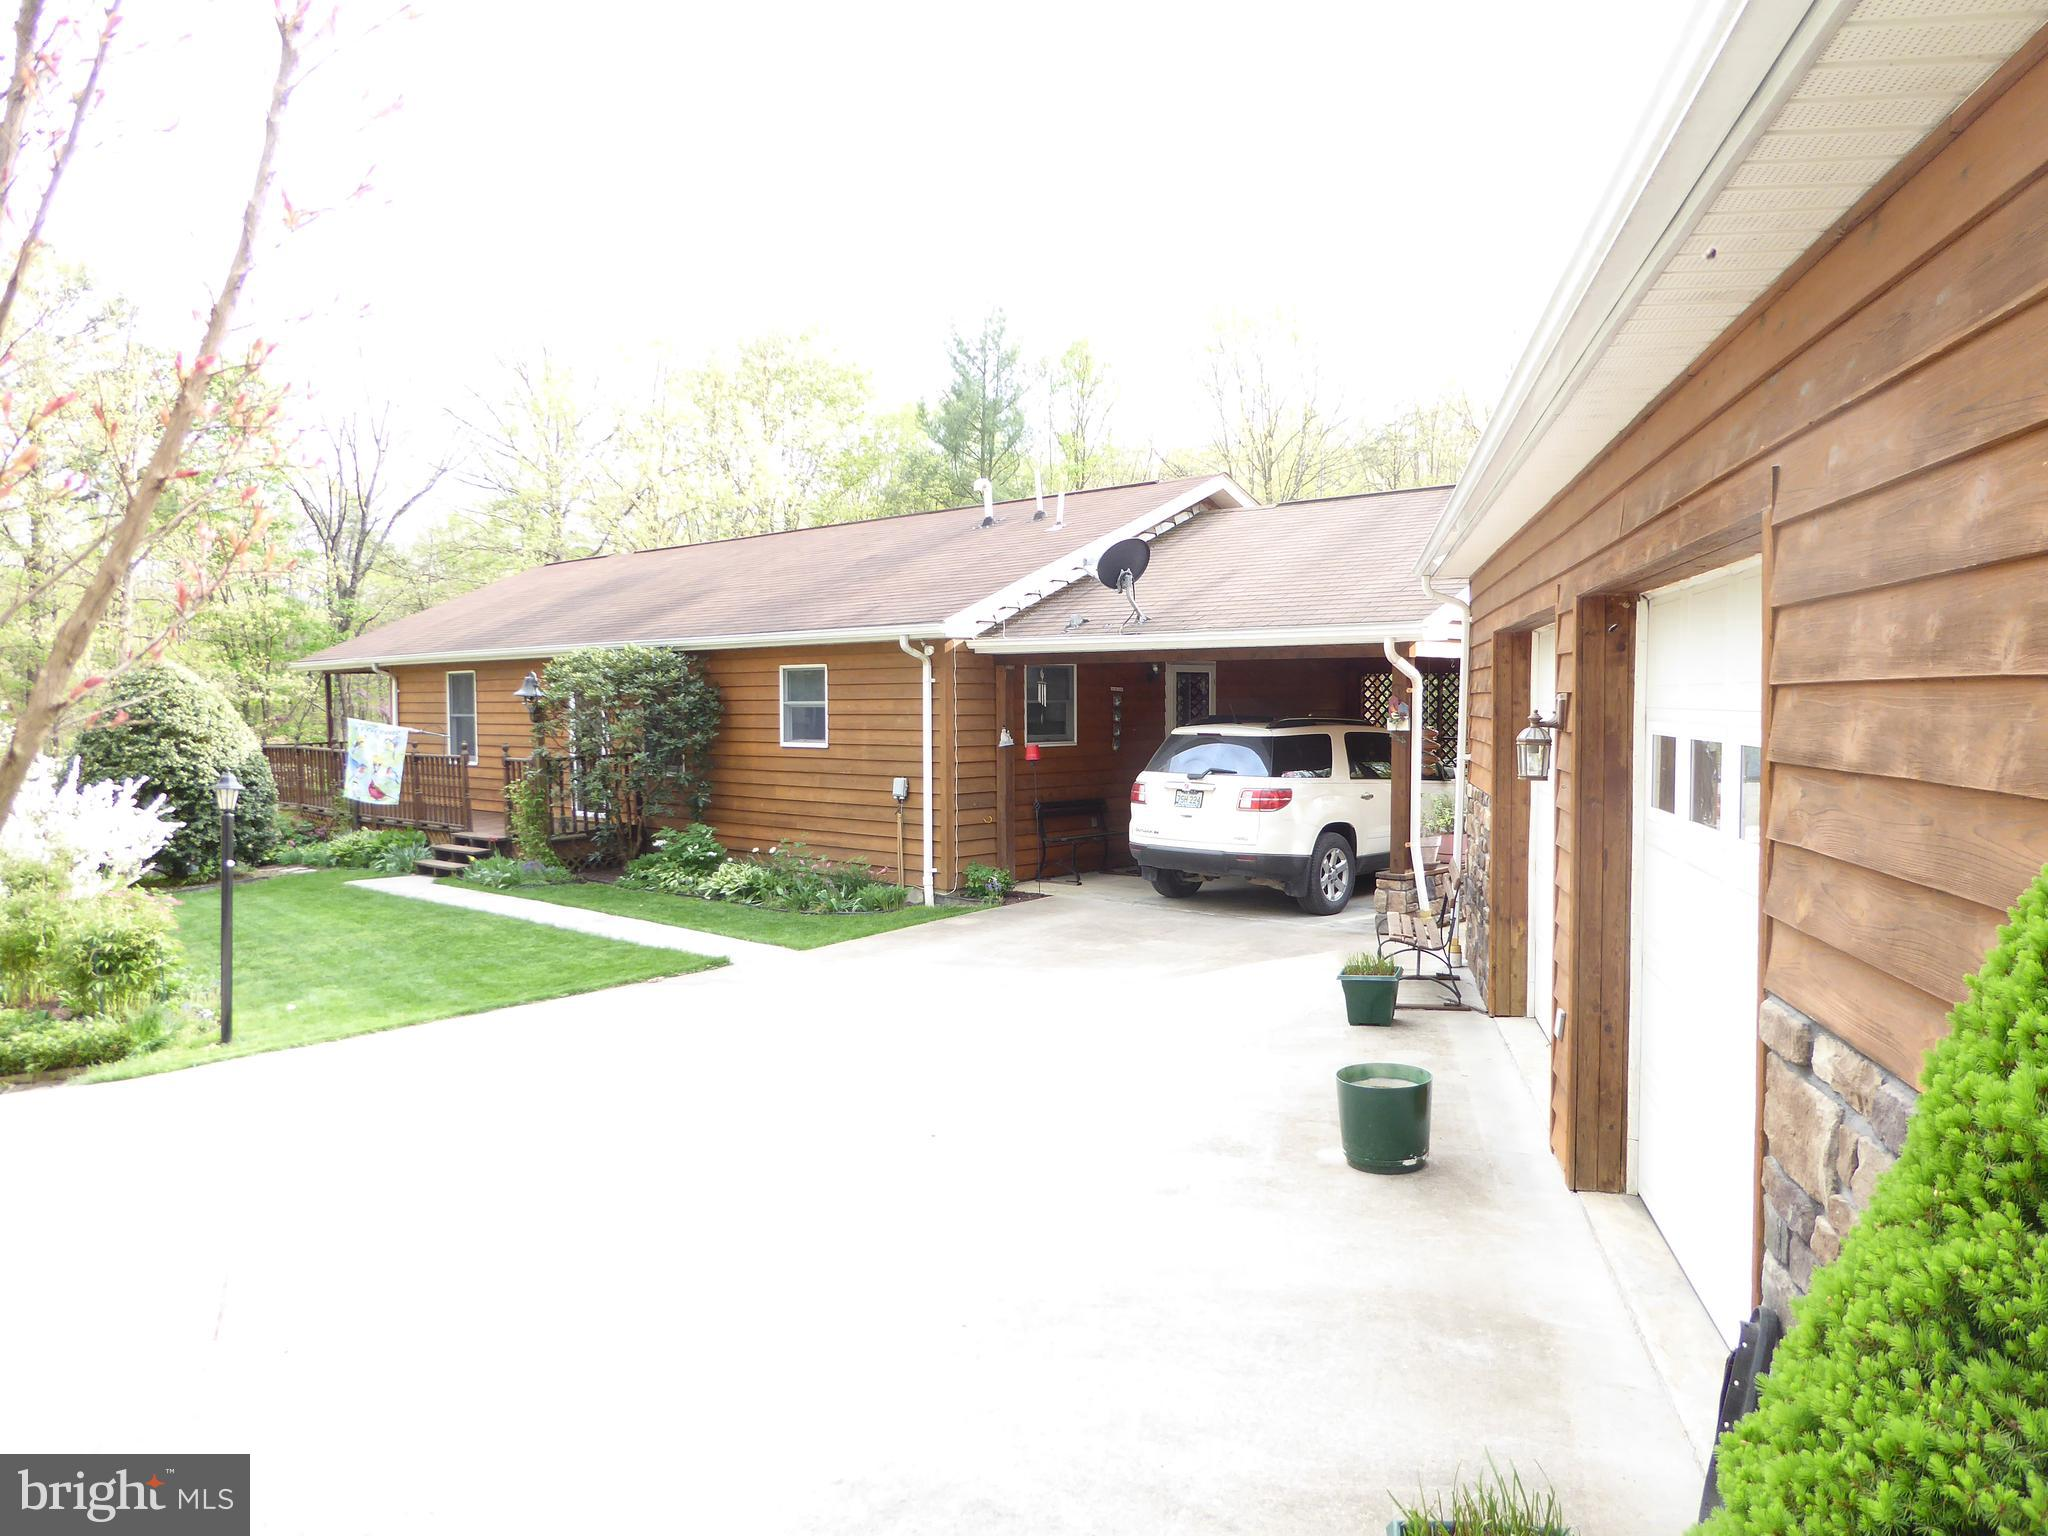 303 FAWN DRIVE, SPRINGFIELD, WV 26763